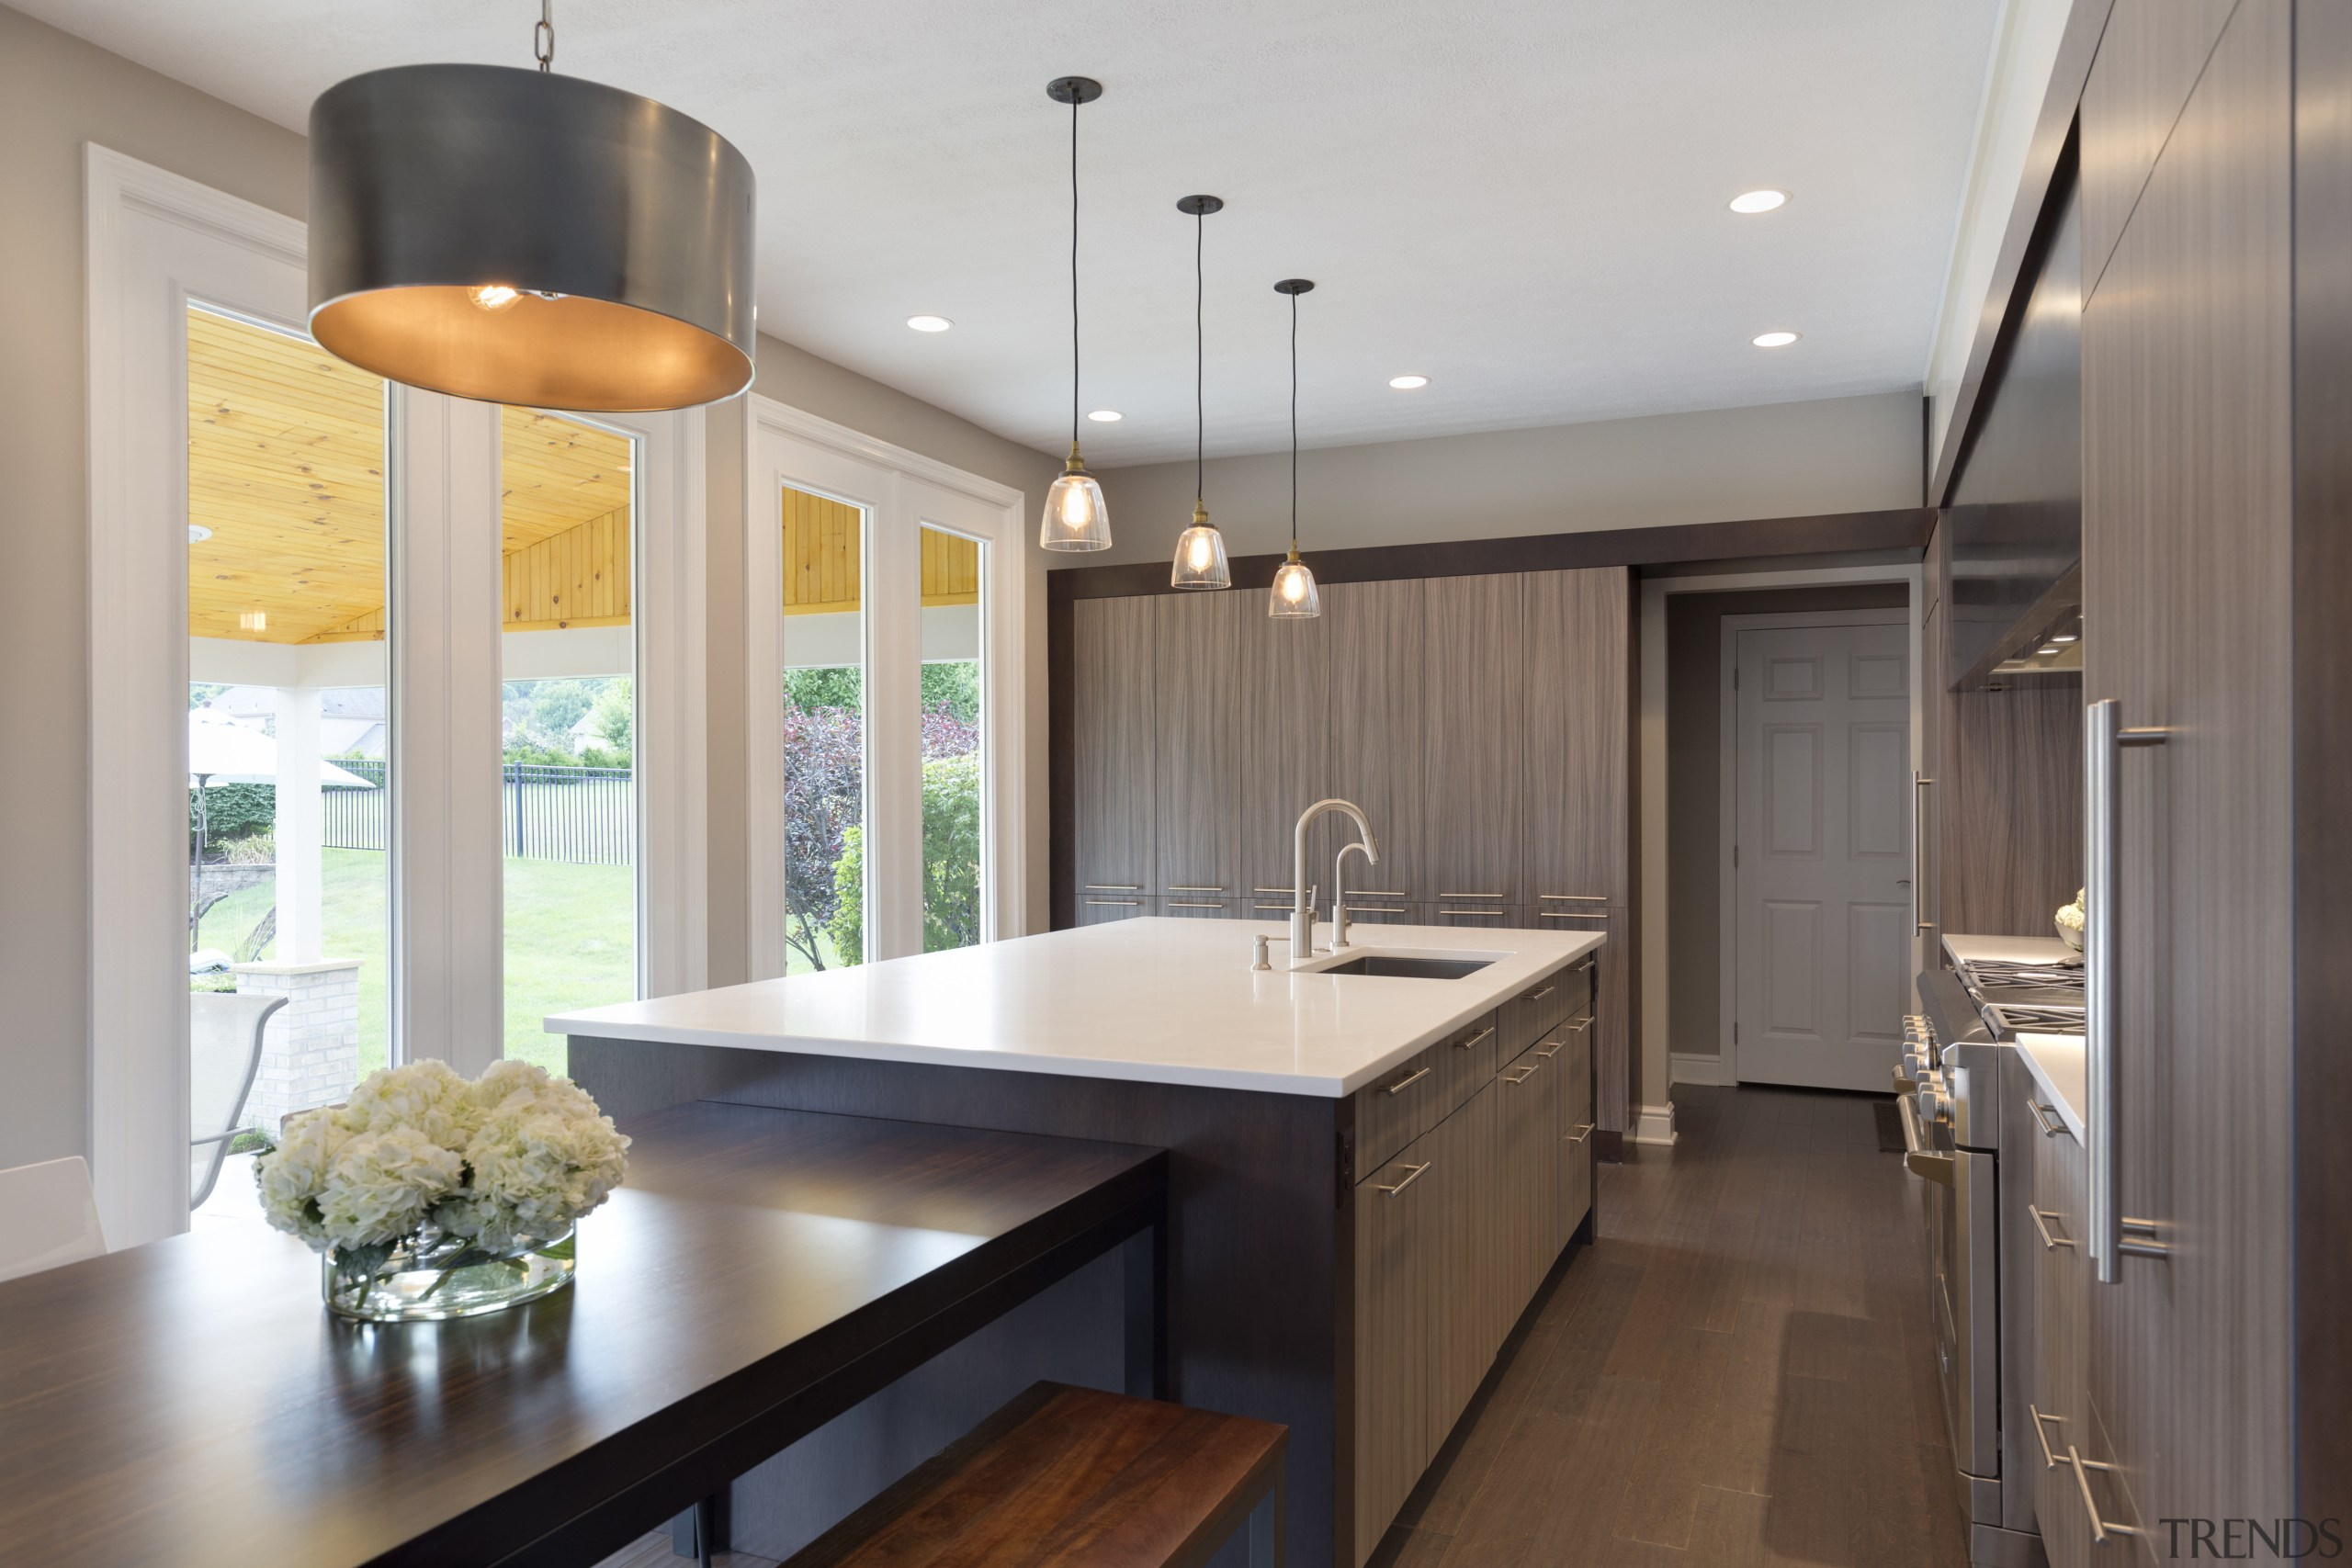 A large island and two walls of cabinetry cabinetry, ceiling, countertop, cuisine classique, interior design, kitchen, real estate, room, gray